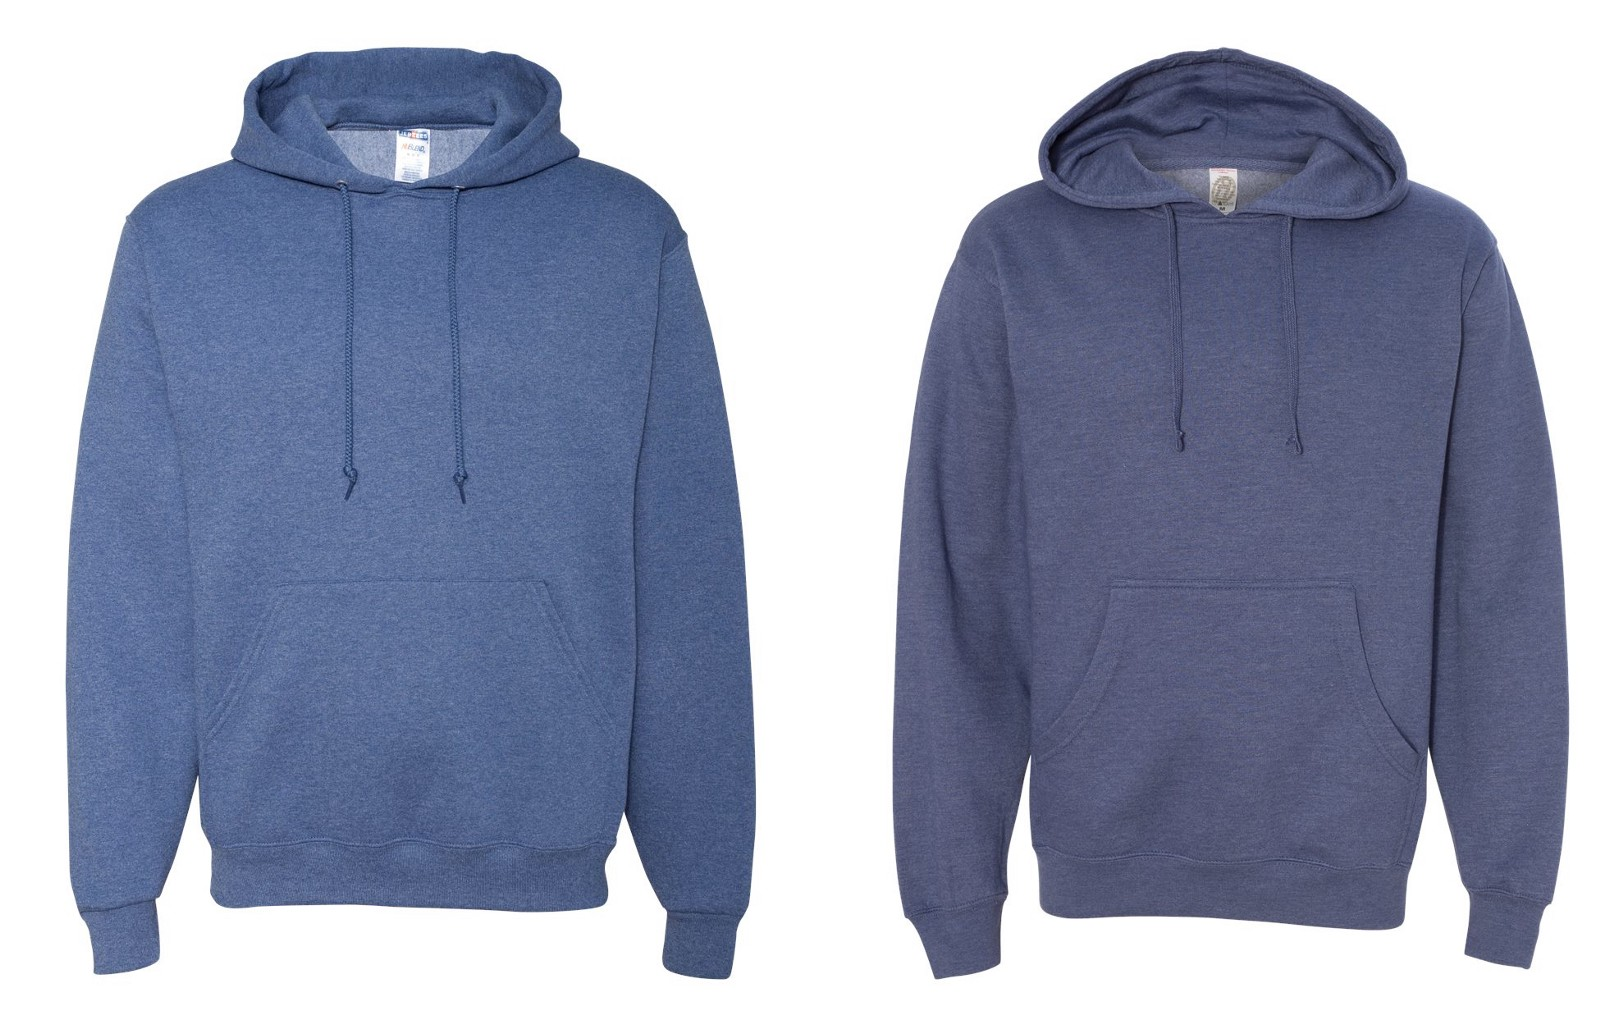 c3ee588f6d9 The Best 5 Blank Hoodies to Print On   Reviewed – Christian Ramirez ...